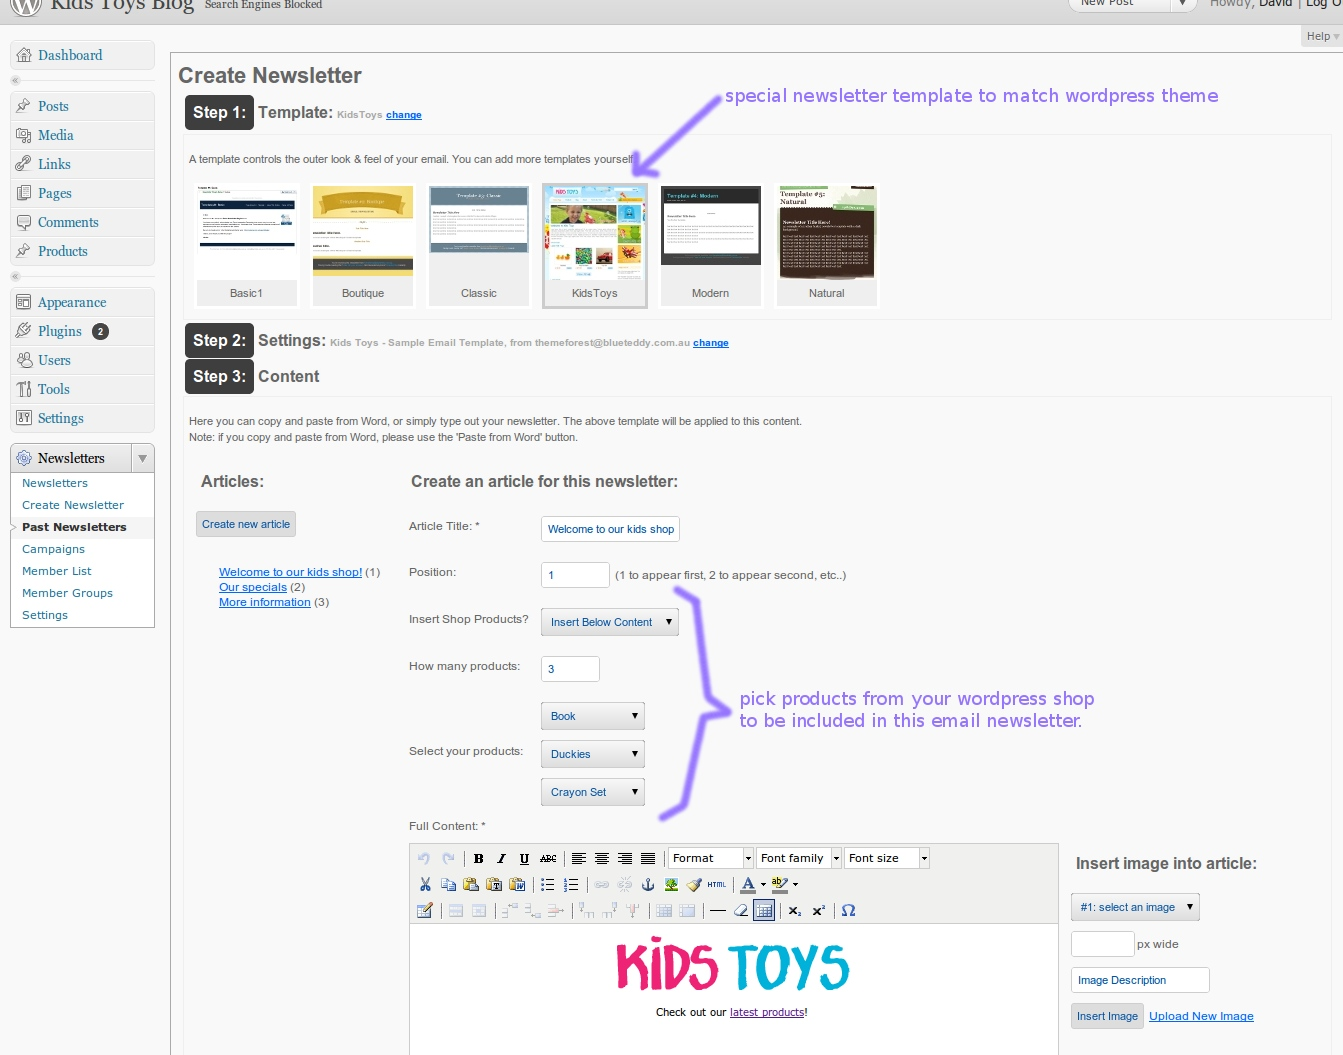 Kids Toys - WordPress Shop Theme - Here is a screenshot of sending a newsletter out to all your customers, automatically including a few products from your shop!! WOW!